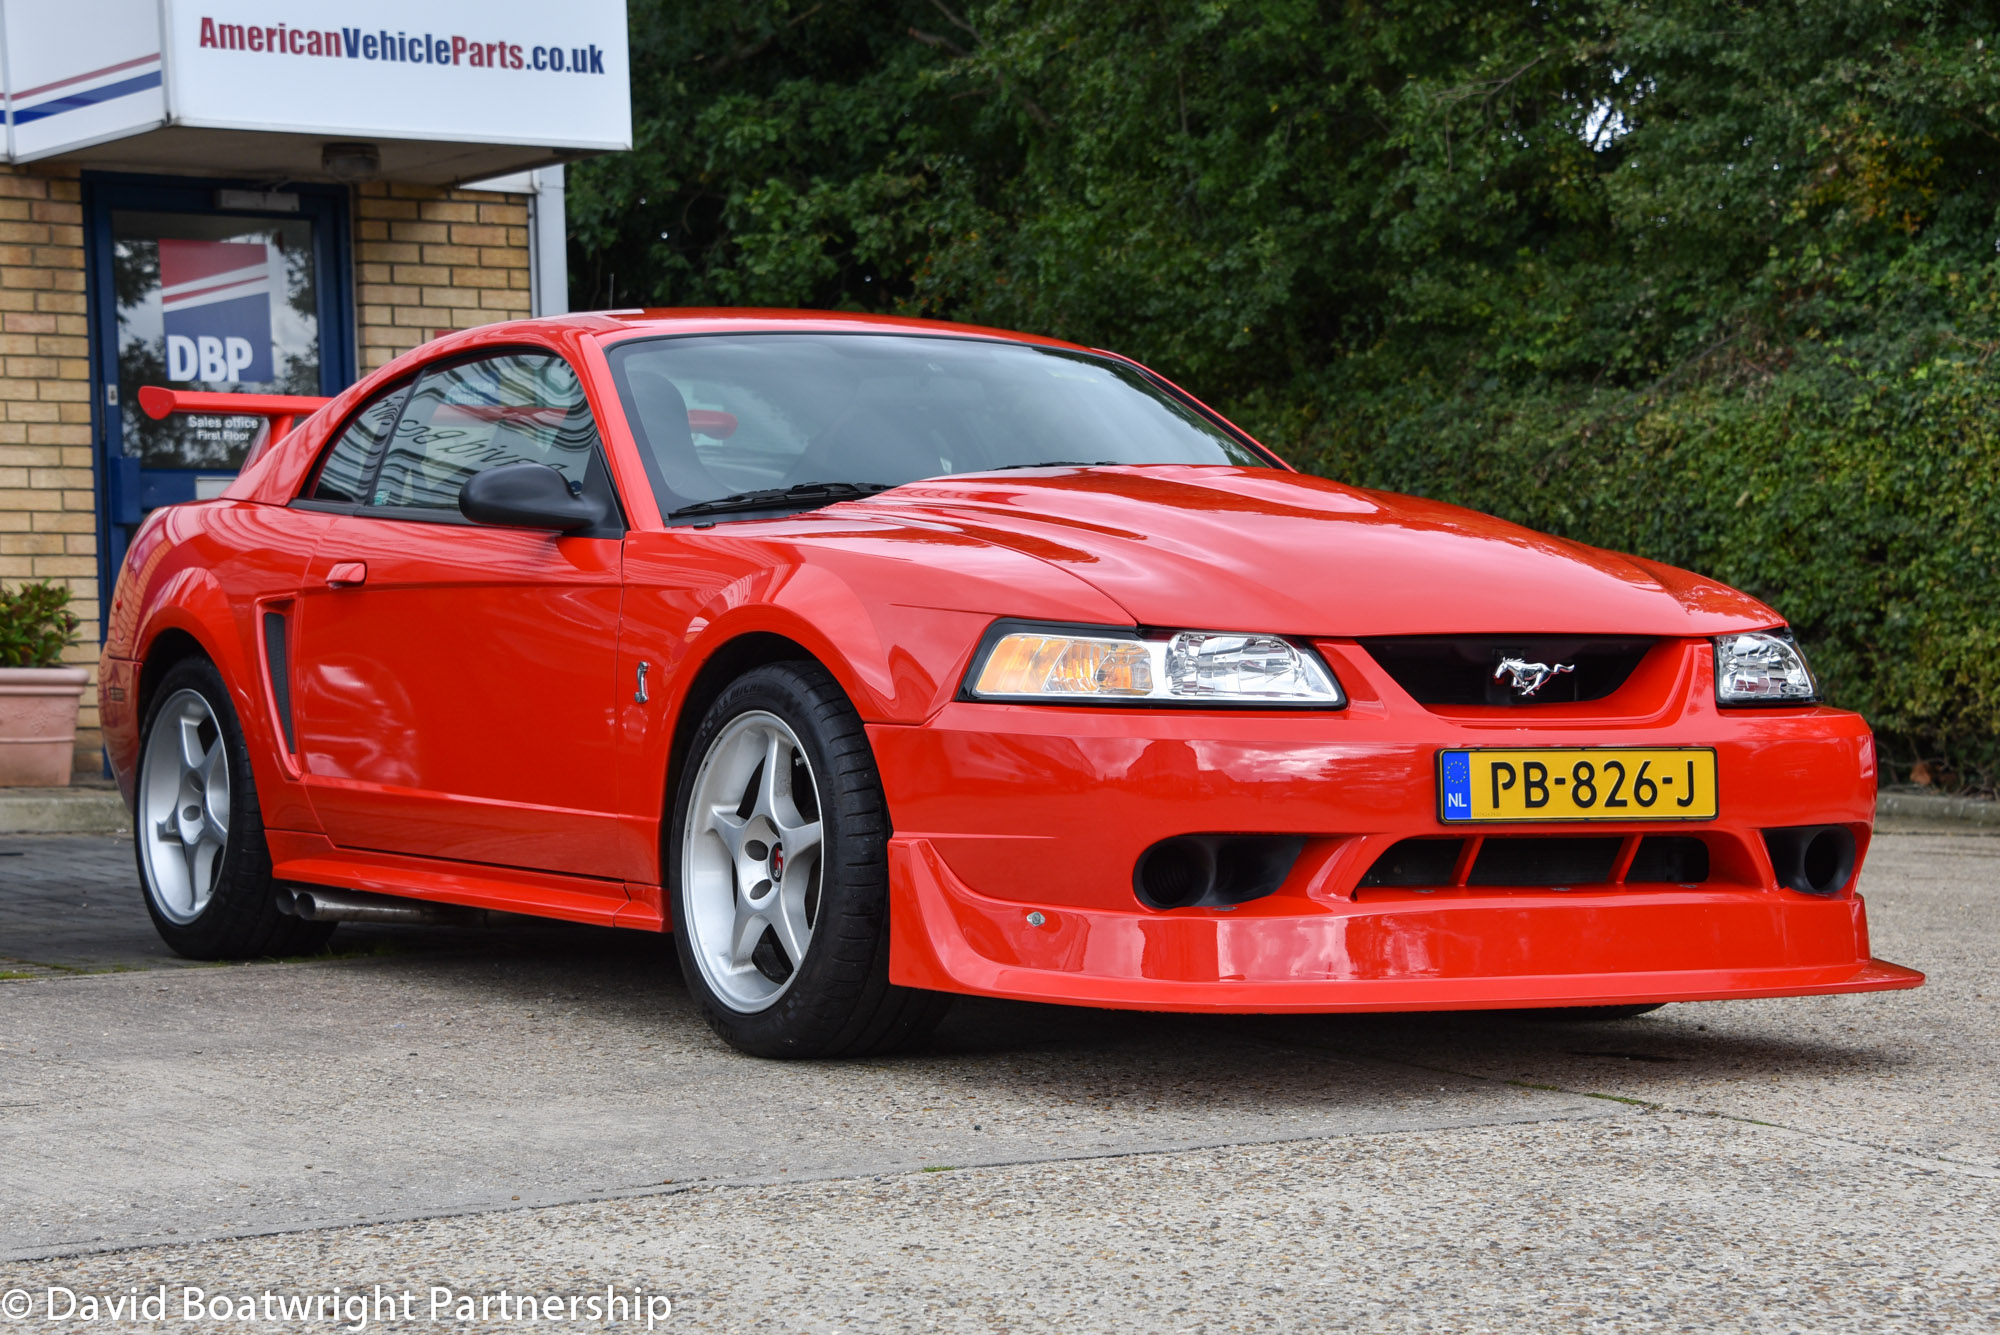 Mustang Parts Car For Sale